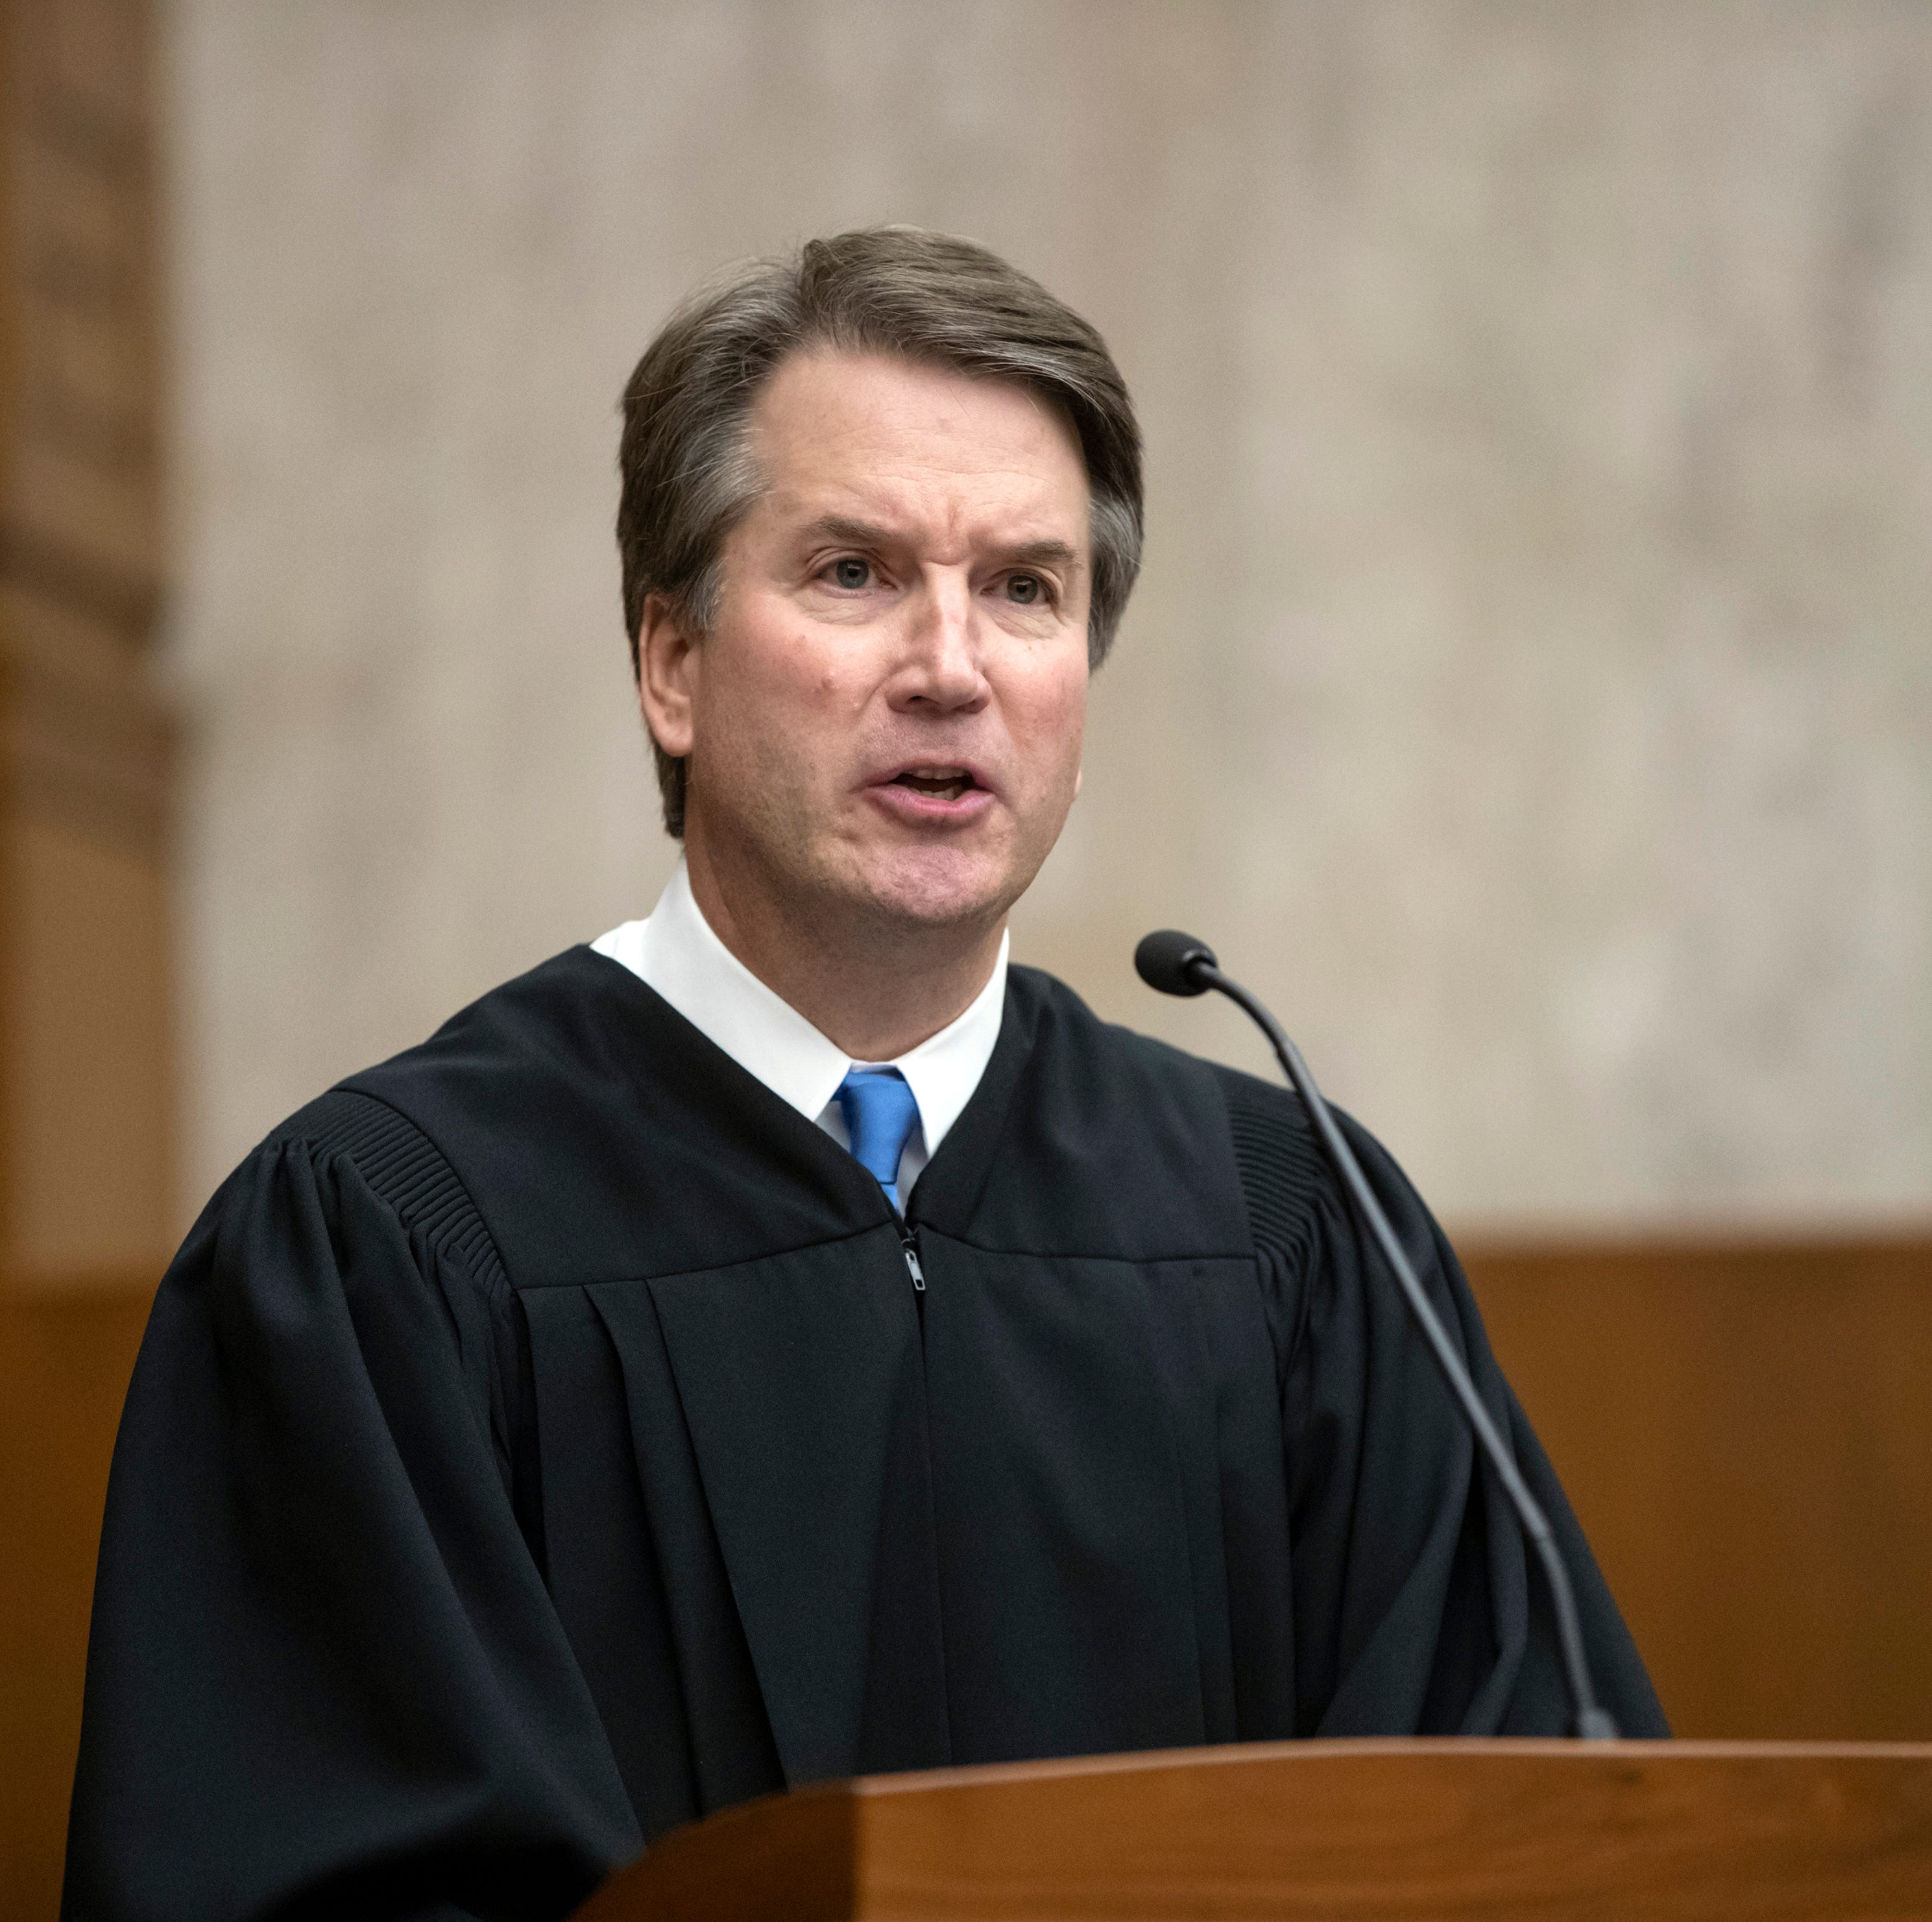 Judge Brett Kavanaugh on Aug. 7, 2018, at the U.S. District Courthouse in Washington.